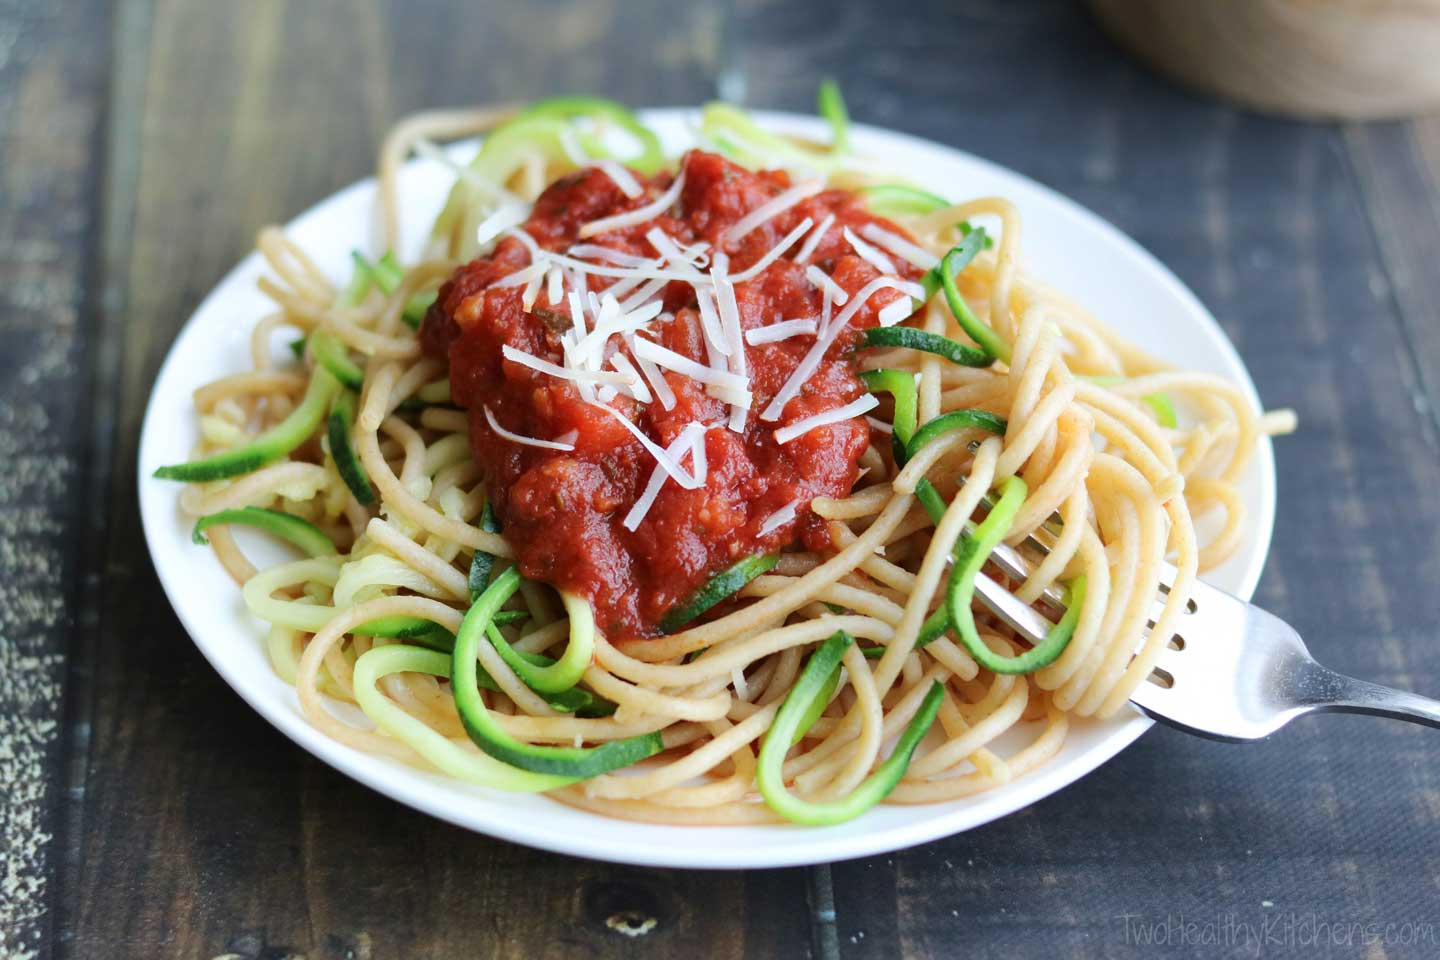 Top your zoodle and spaghetti mixture with your favorite pasta sauce, and even add a bit of shredded cheese. In minutes, dinner is served! A 15-minute meal you can feel great serving your family!